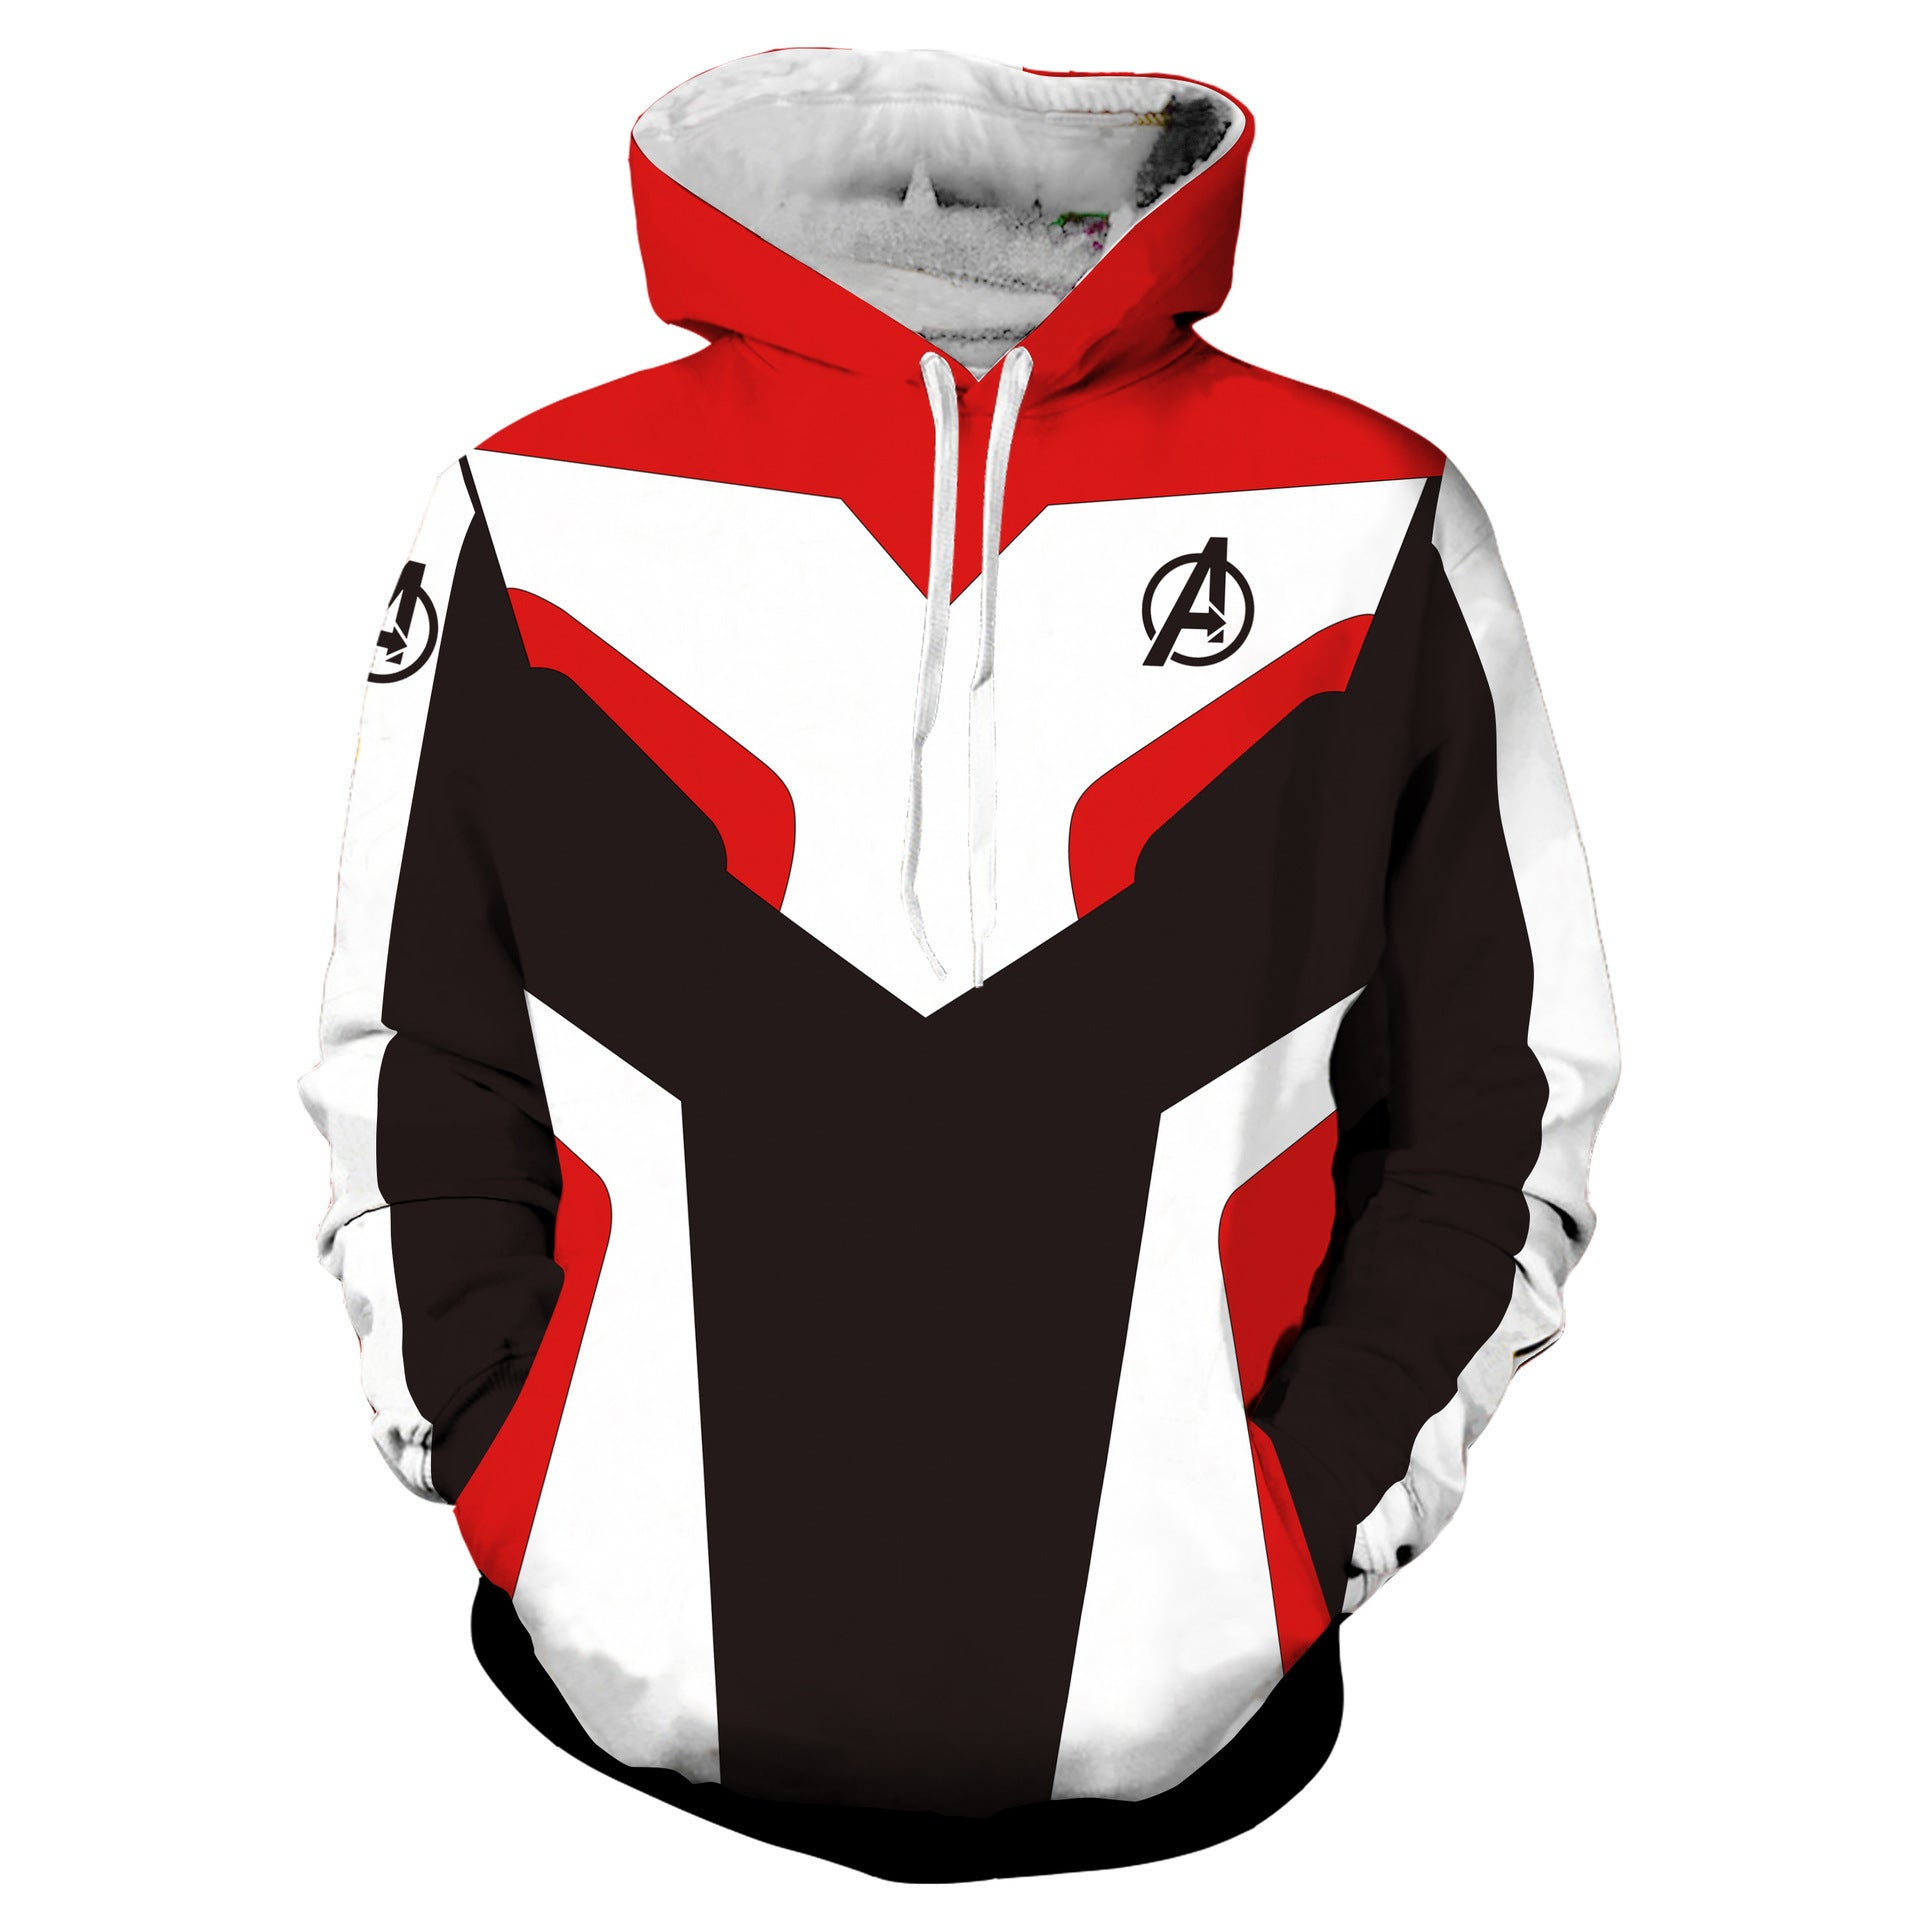 Avengers4: Endgame Quantum battle suit 3D pullover - Red + white